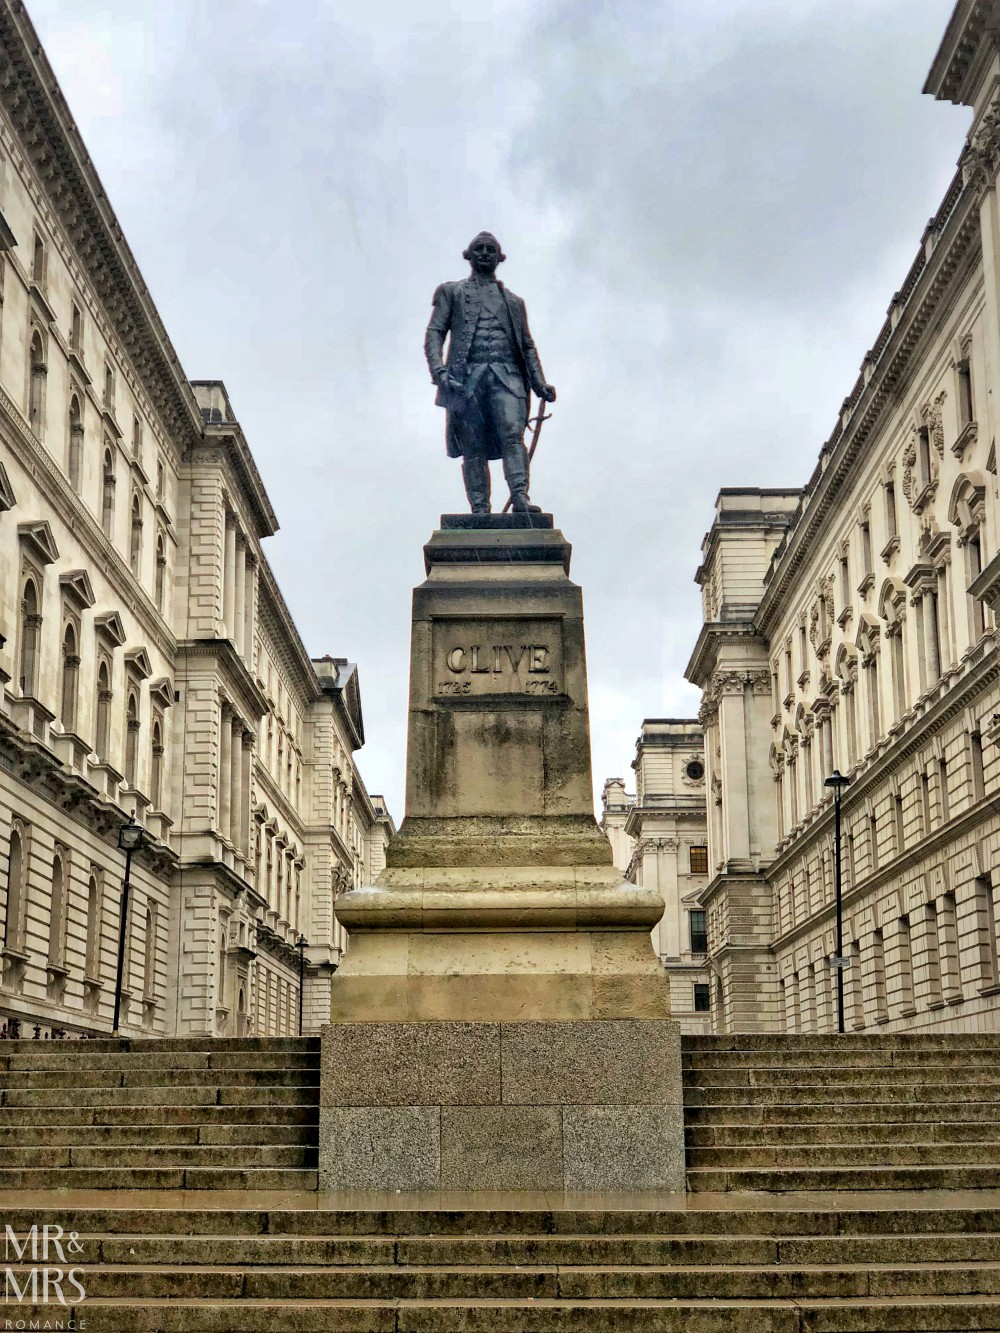 London in the rain - Robert Clive Memorial